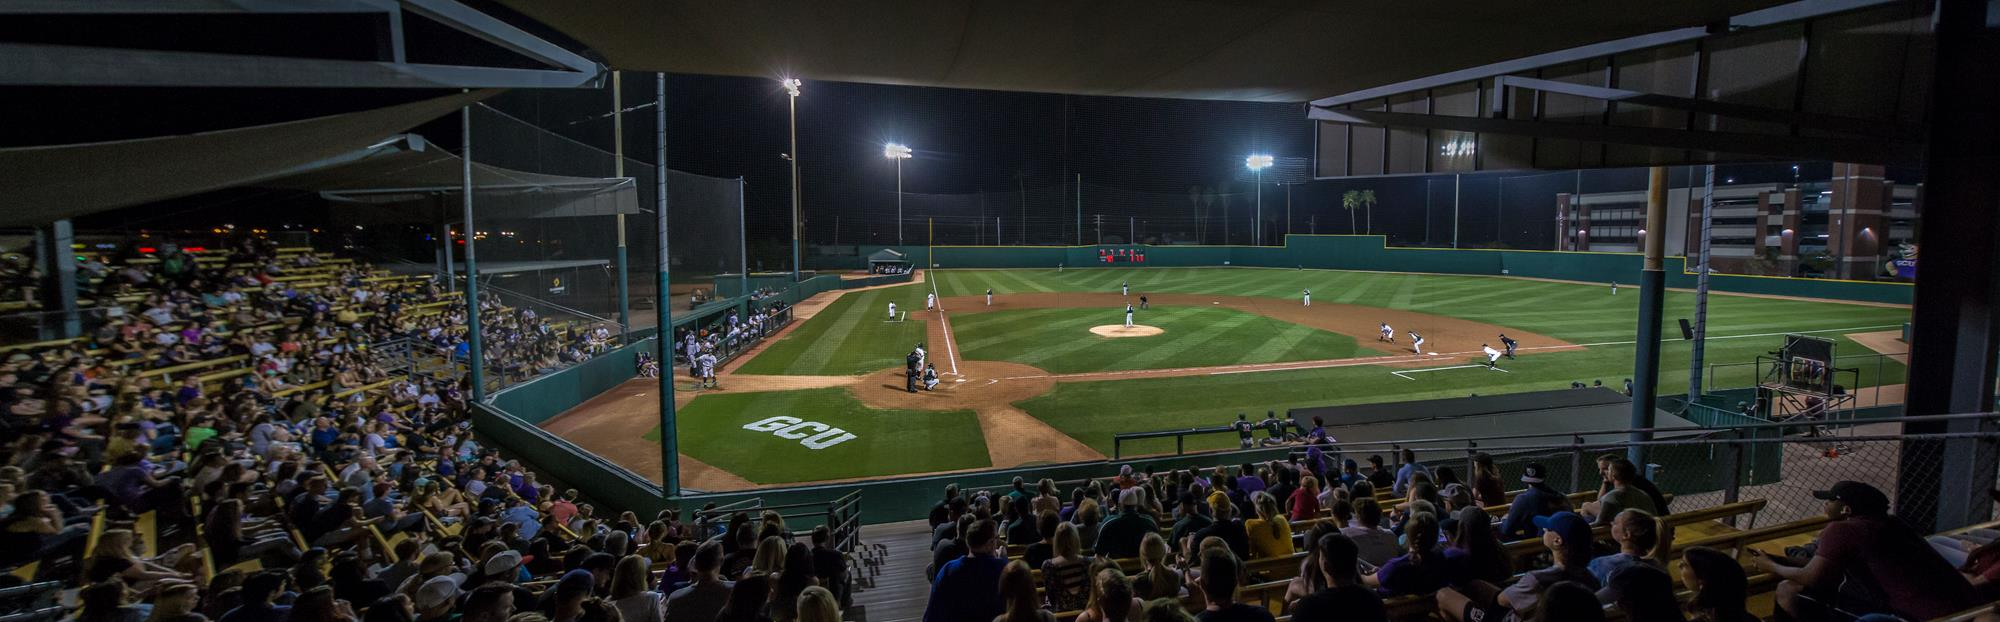 Grand canyon university athletics view full image brazell stadium malvernweather Gallery